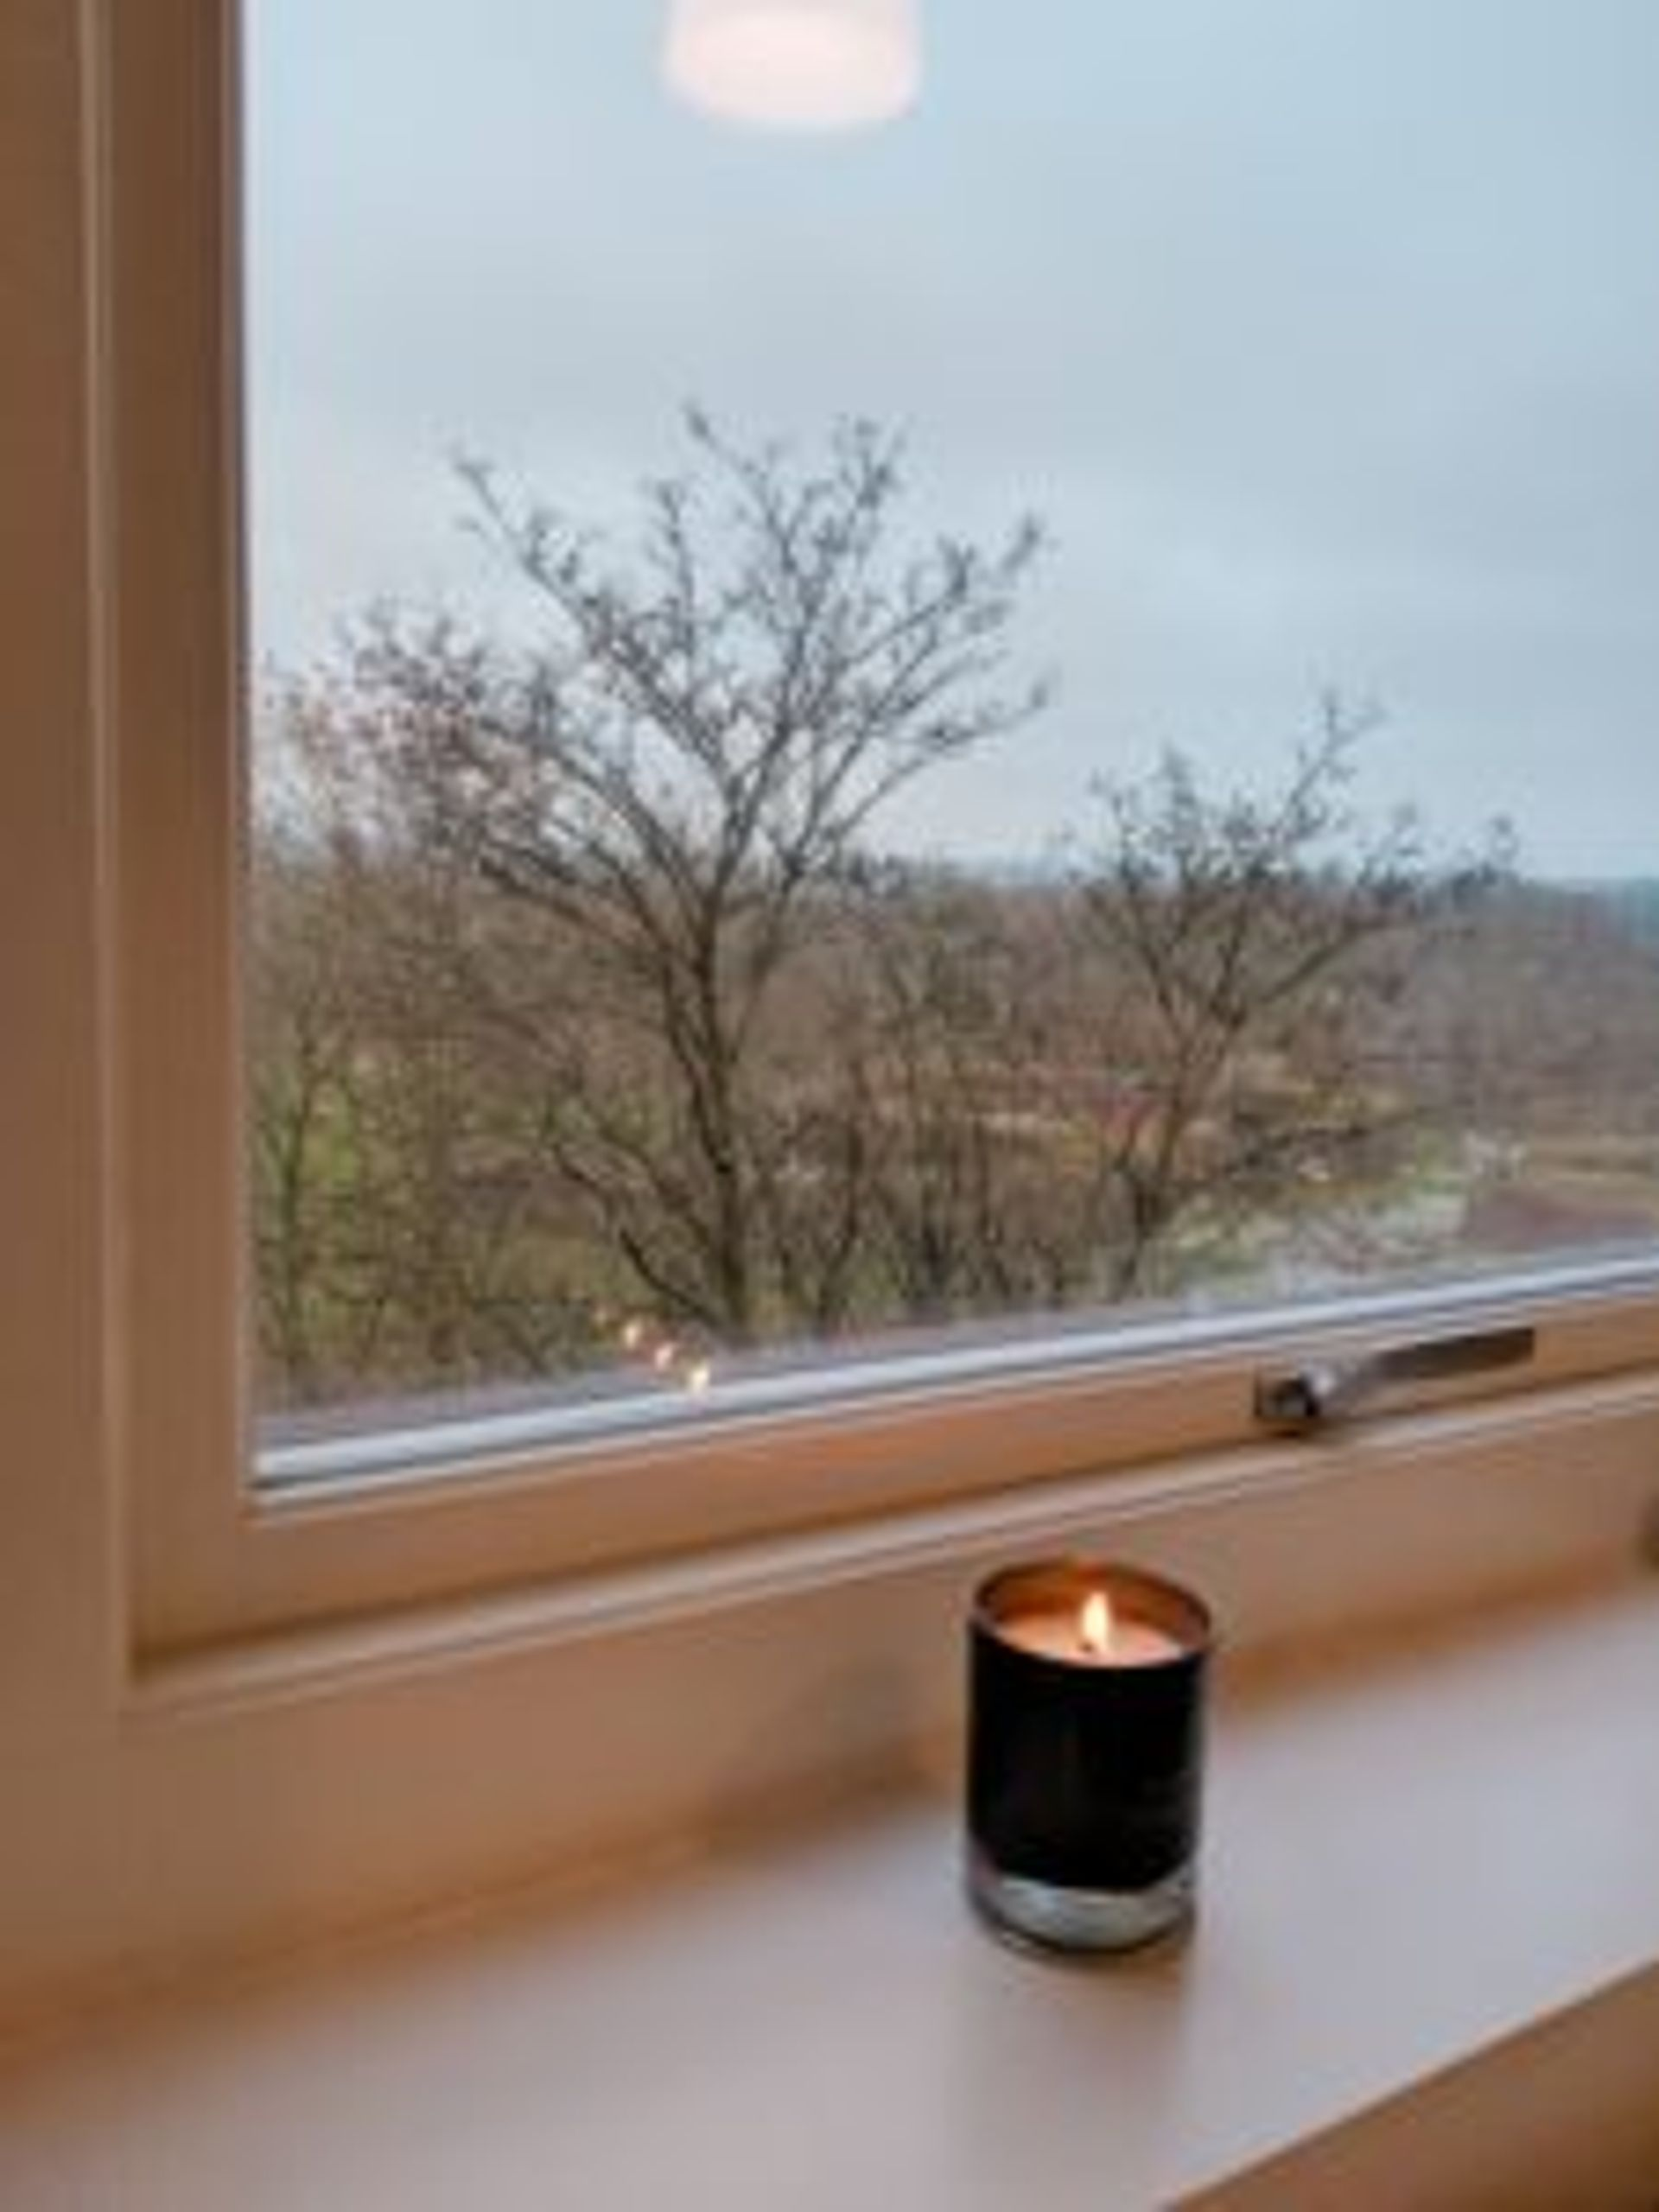 Close-up of a candle on a windowsill.